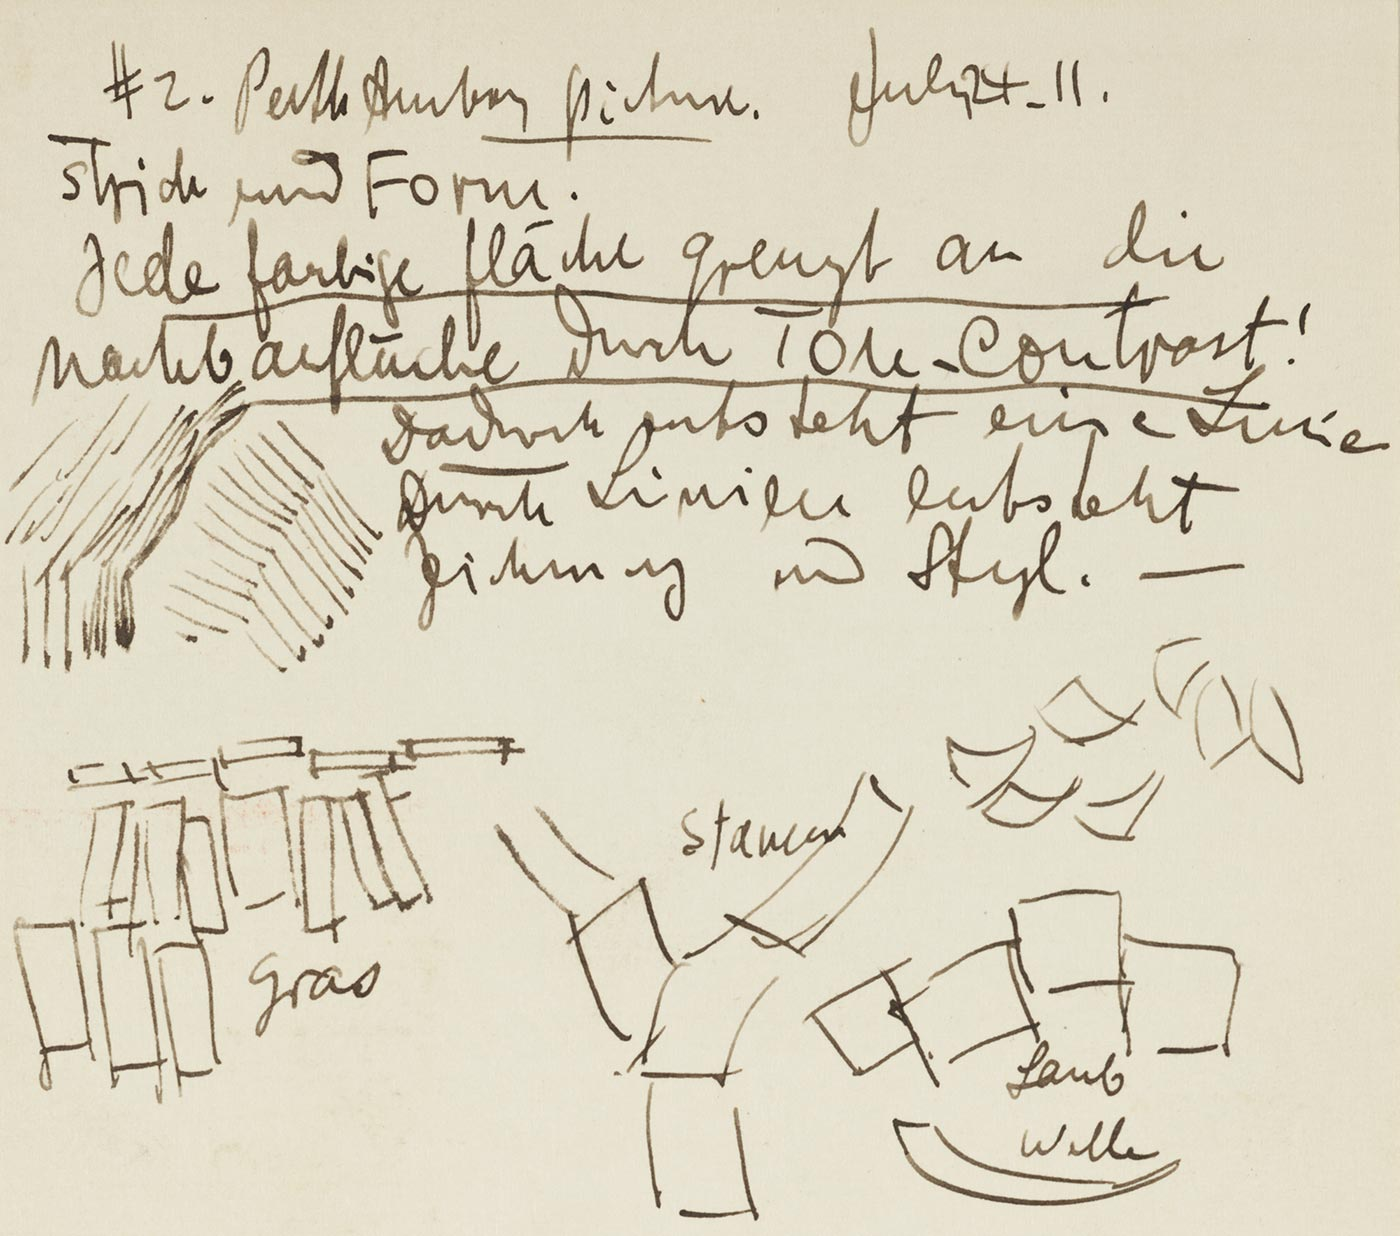 """A detail view of Oscar Bluemner's notebook recording the conception of the work, """"#2 Perth Amboy picture."""""""